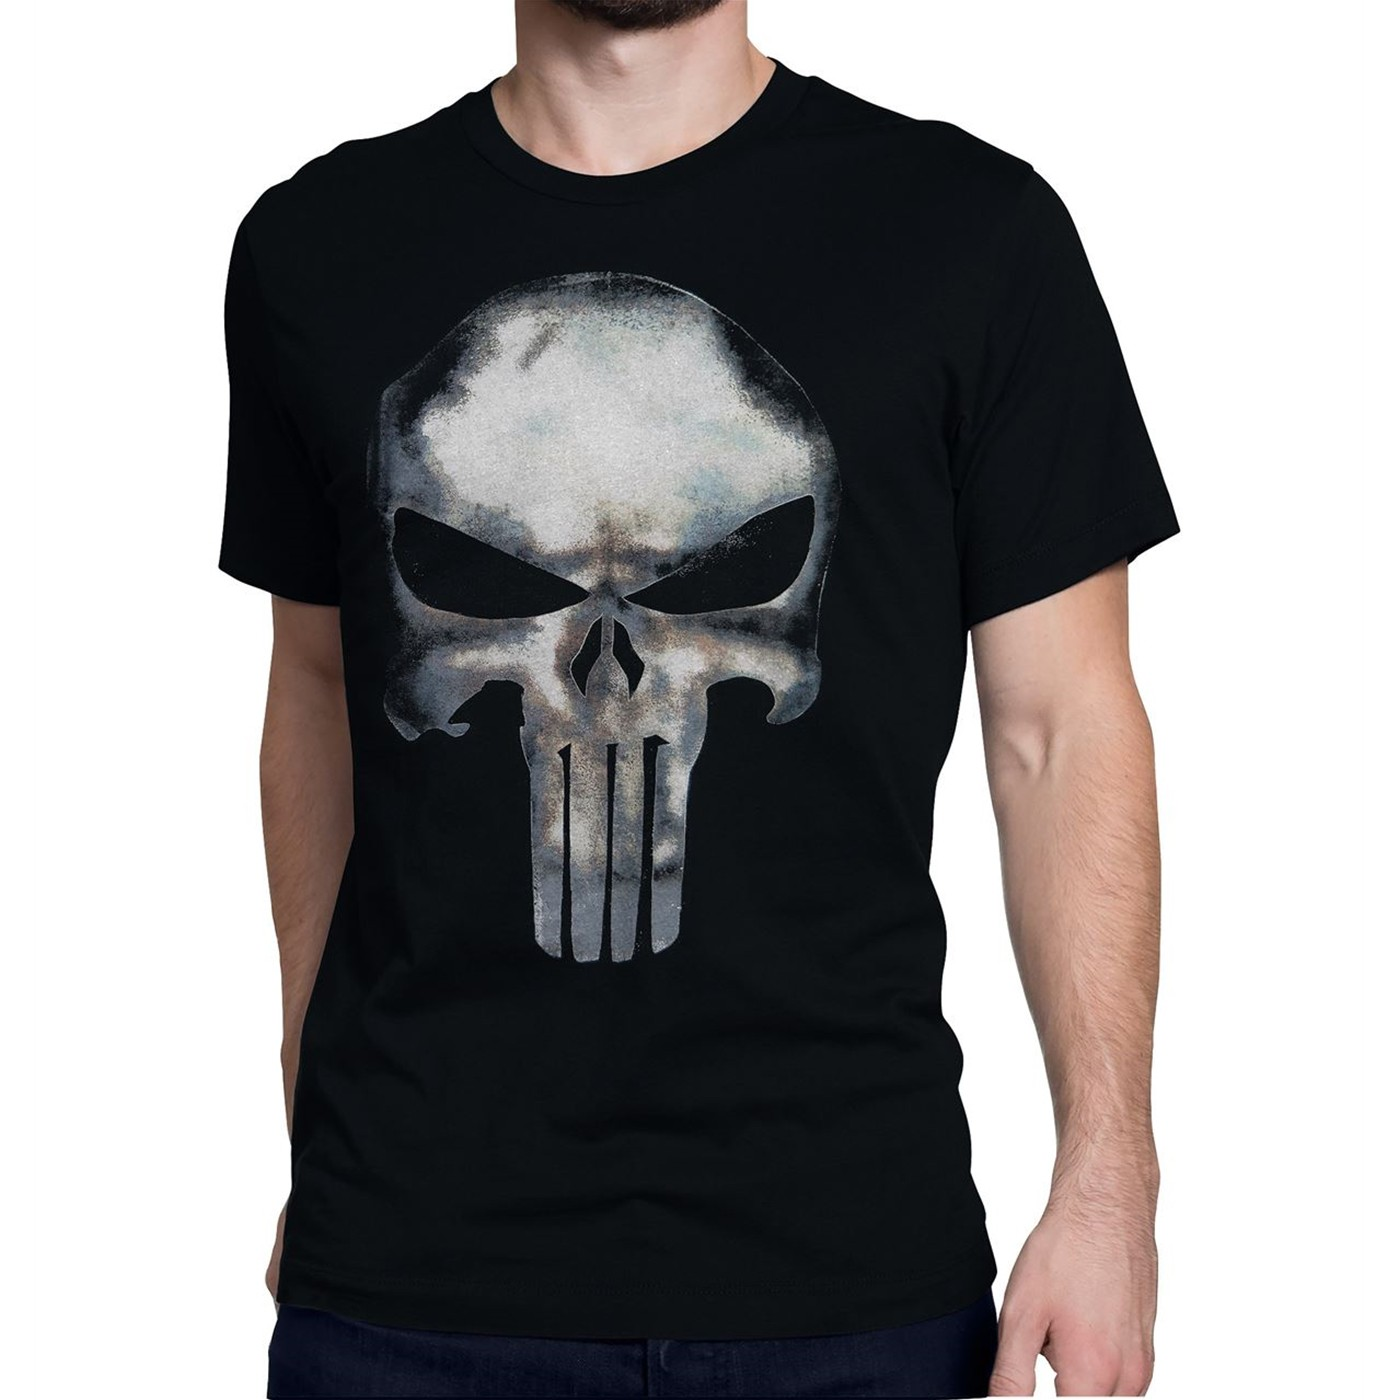 Punisher Movie Skull T-Shirt